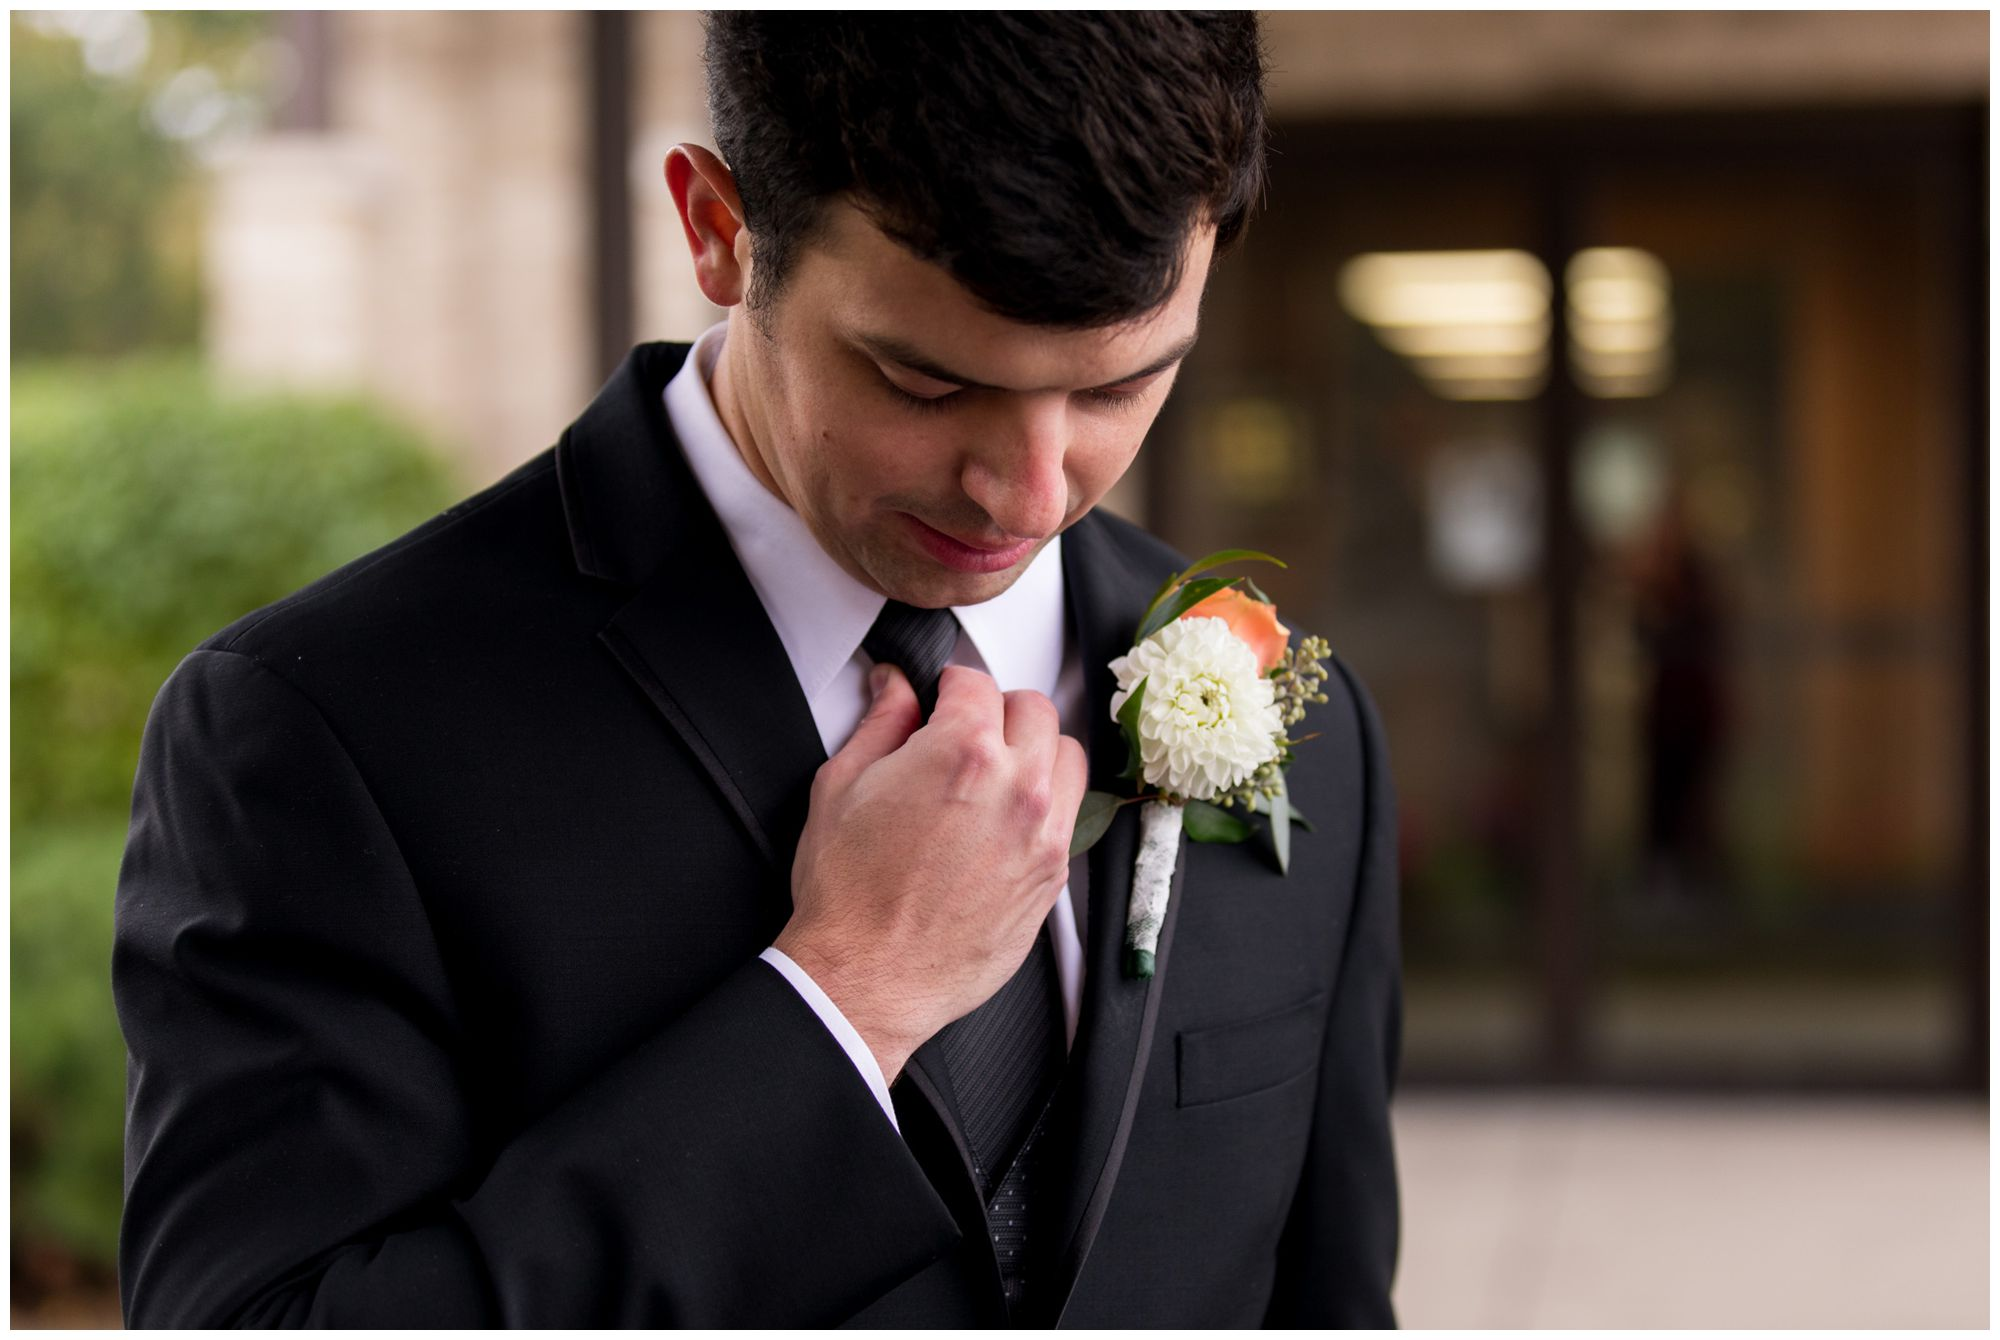 groom straightens tie before wedding ceremony at Zion Lutheran Church in Decatur Indiana